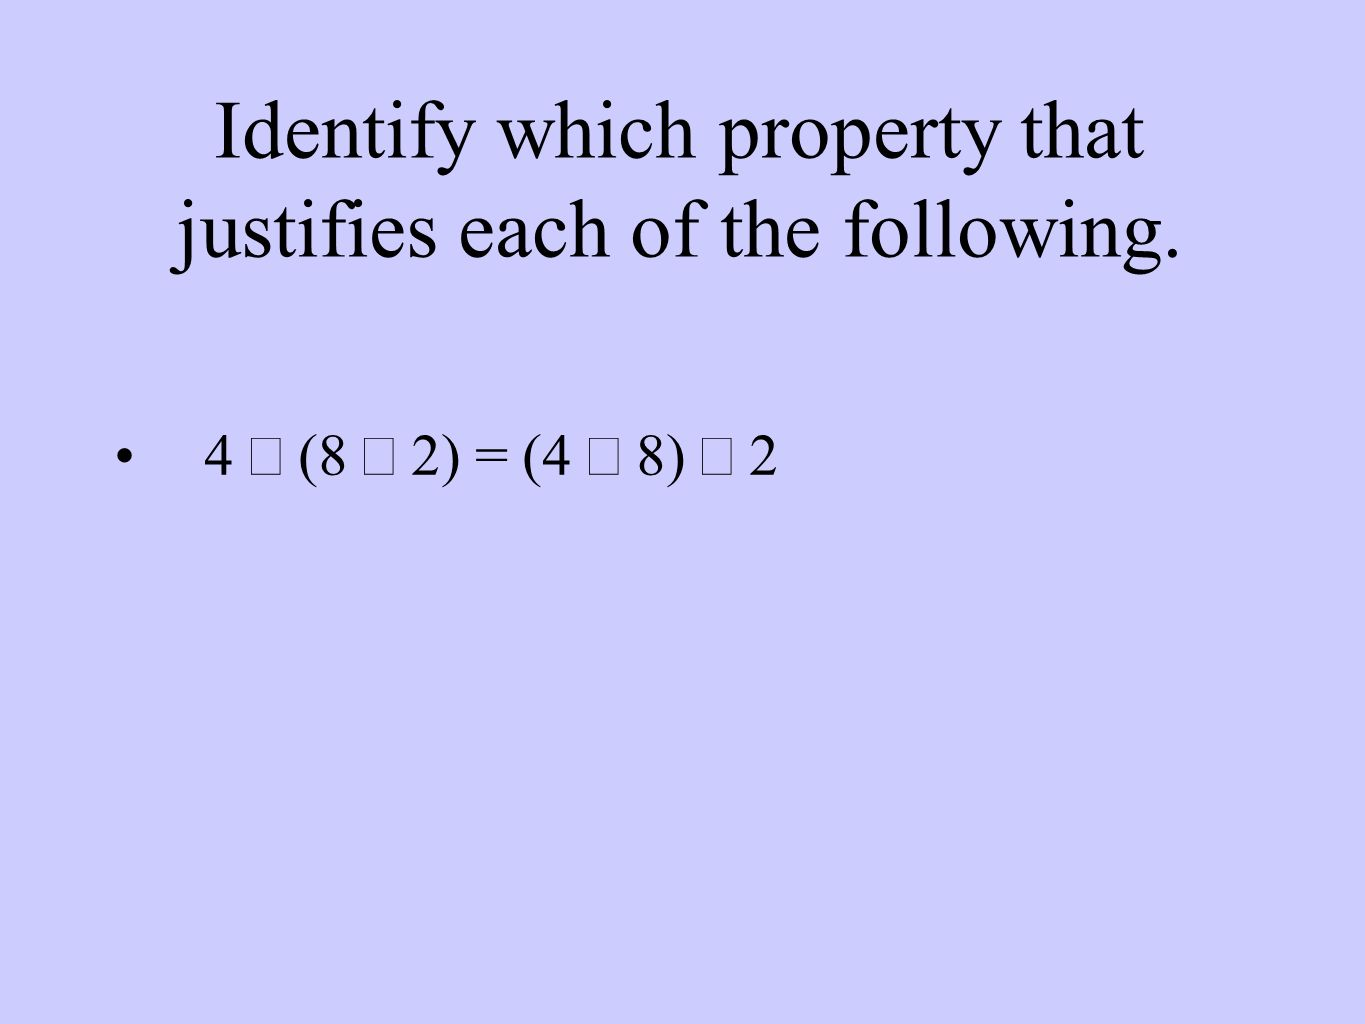 Identify which property that justifies each of the following. 4  (8  2) = (4  8)  2